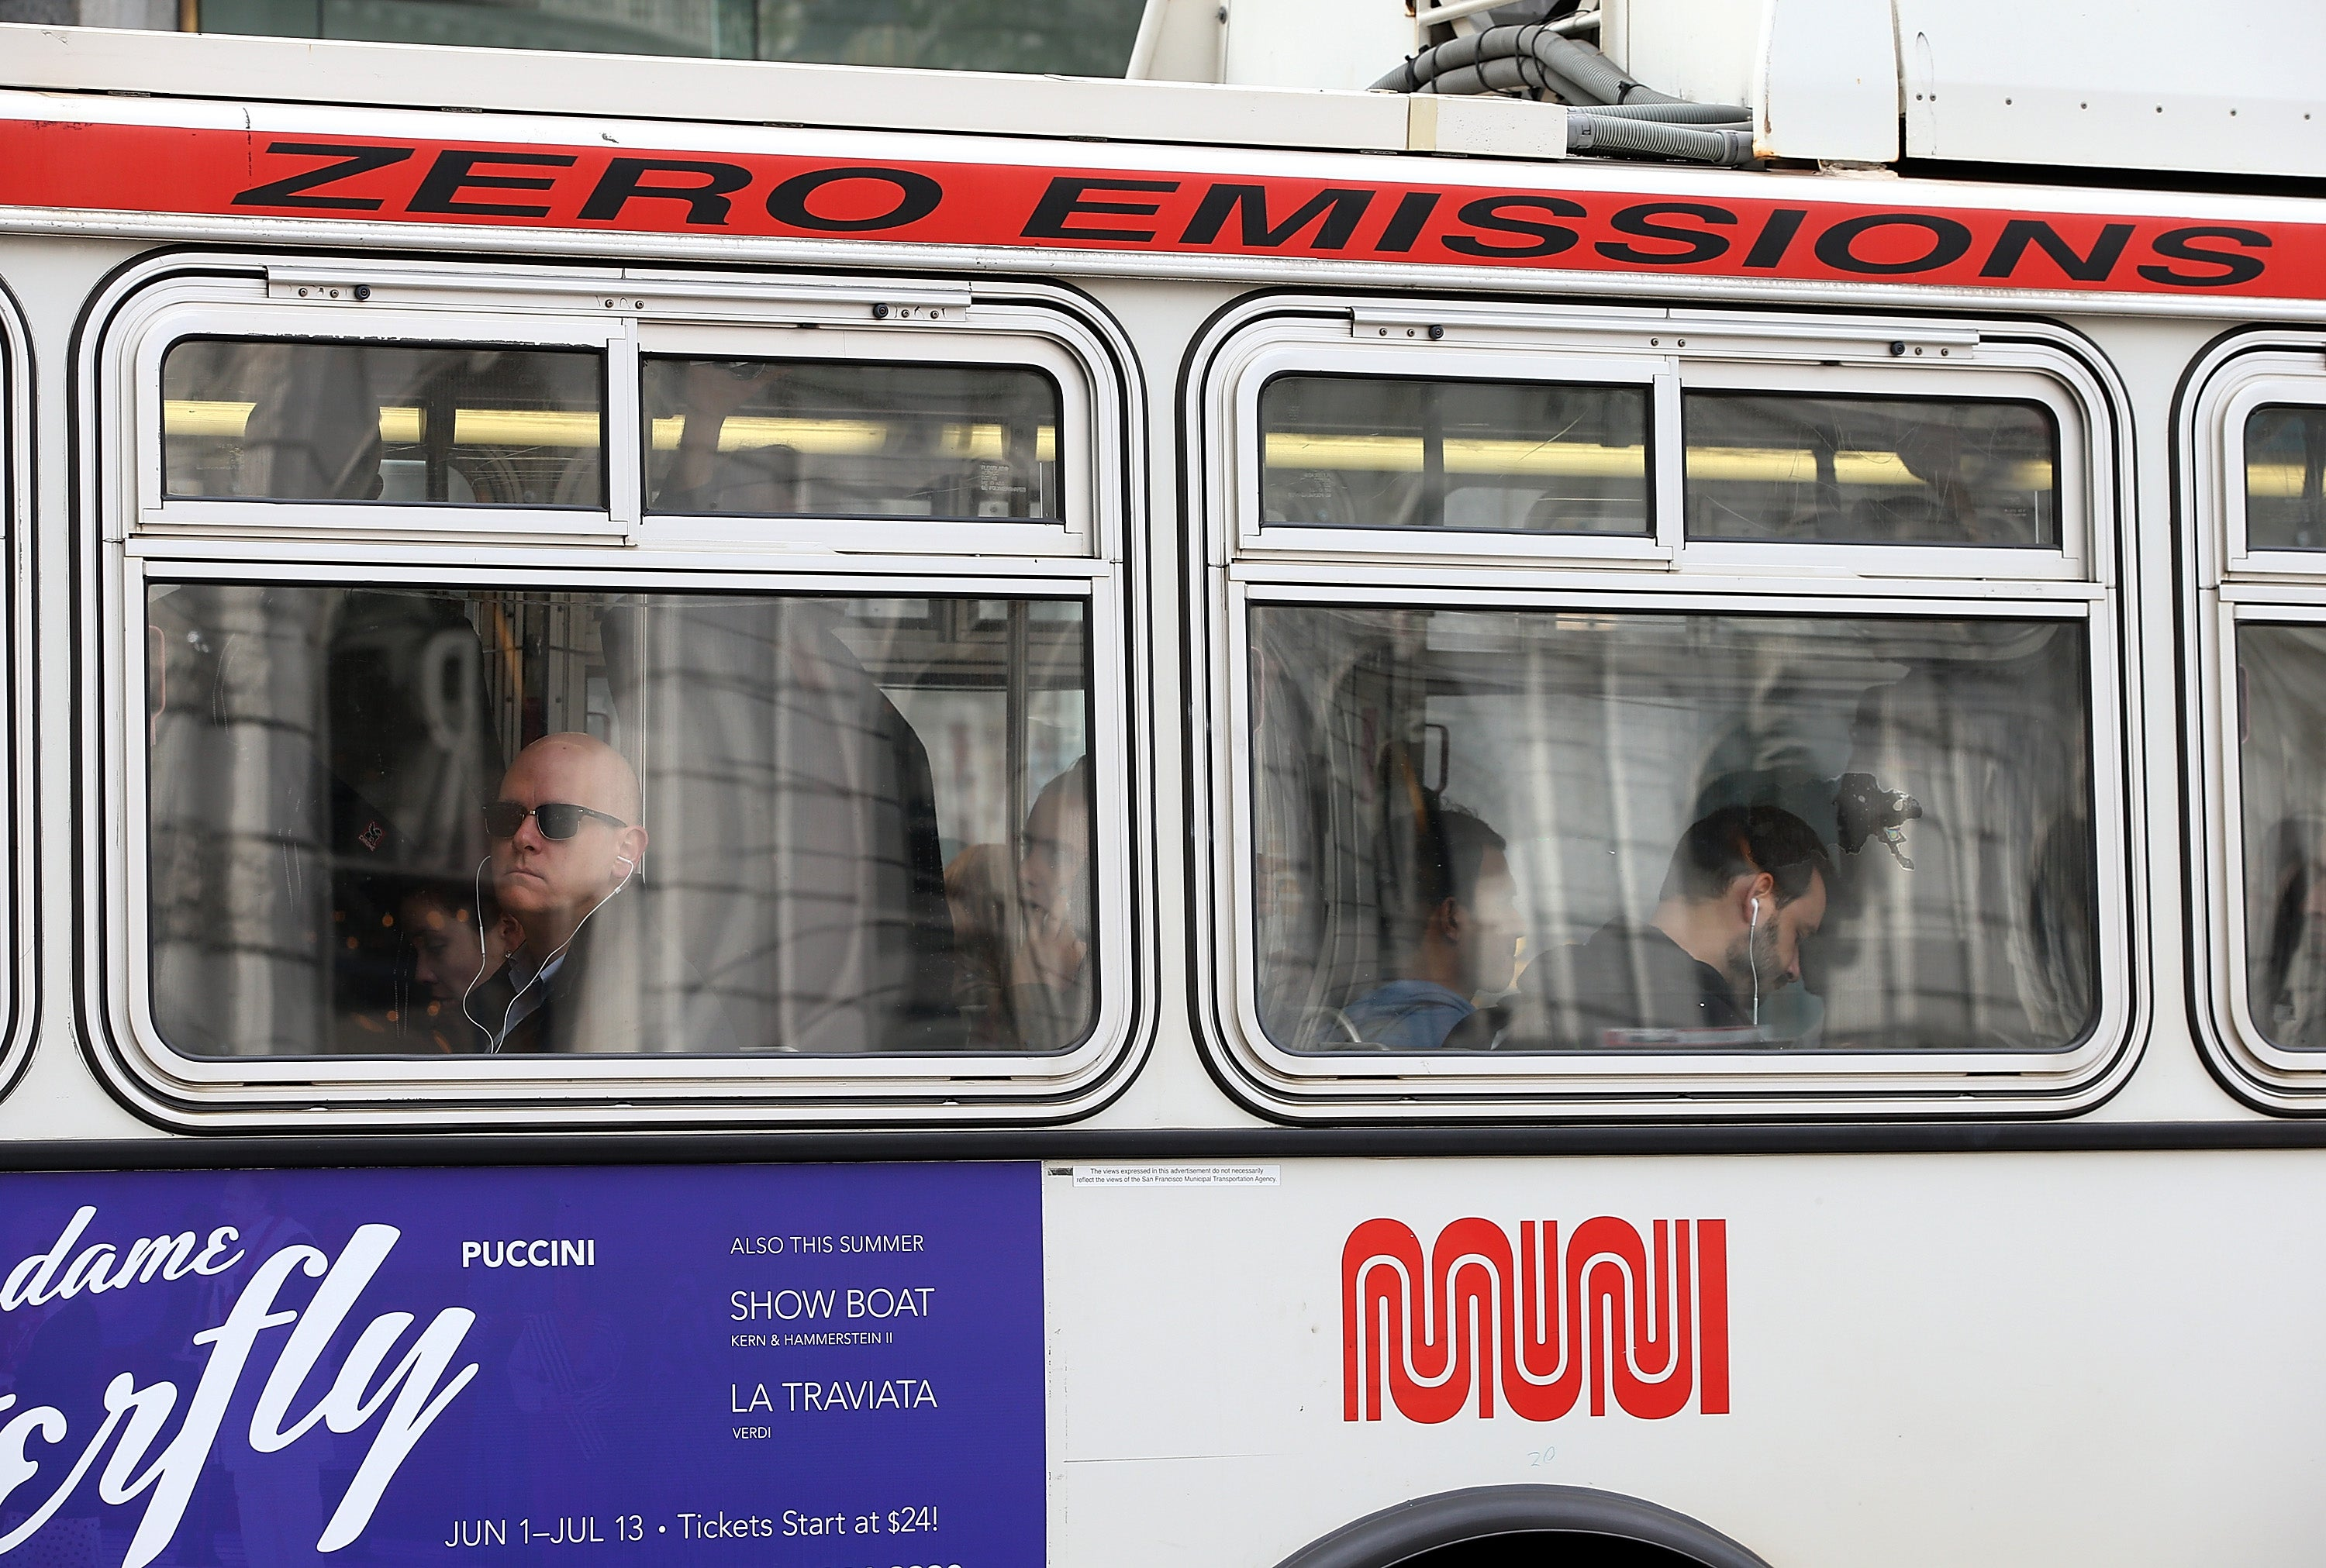 It Looks Like The San Fransisco Muni Hack Was Worse Than We Thought